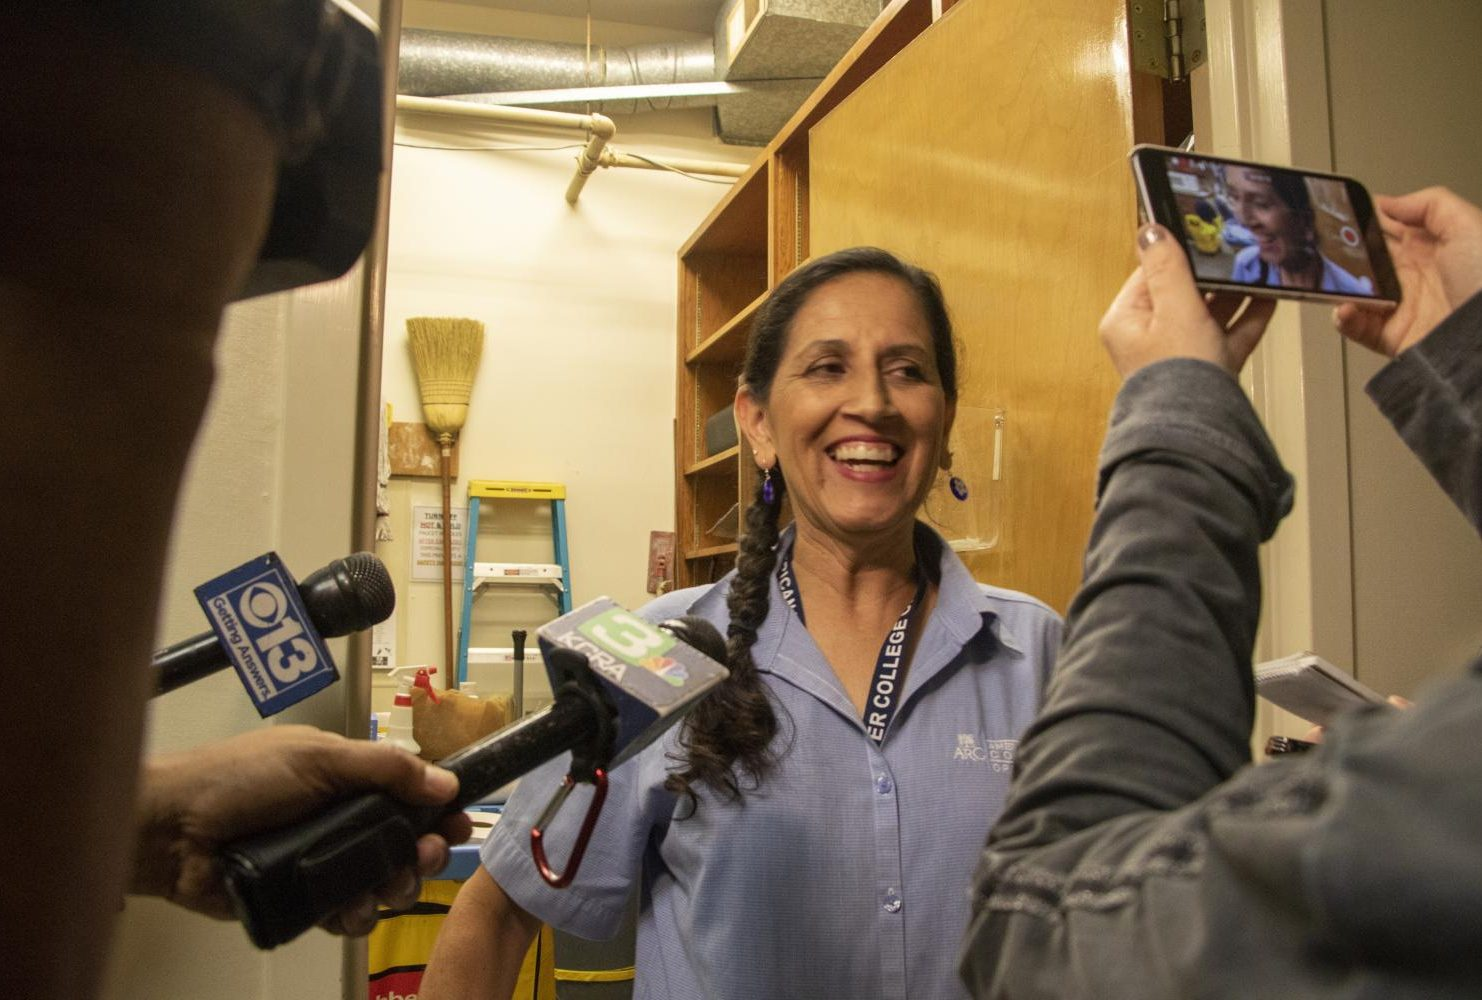 American River College custodian Maria Arambula gets interview by the local media before being job shadow by Calif. Governor Gavin Newsom during International Workers' Day on May 1, 2019. (Photo by Ashley Hayes-Stone)